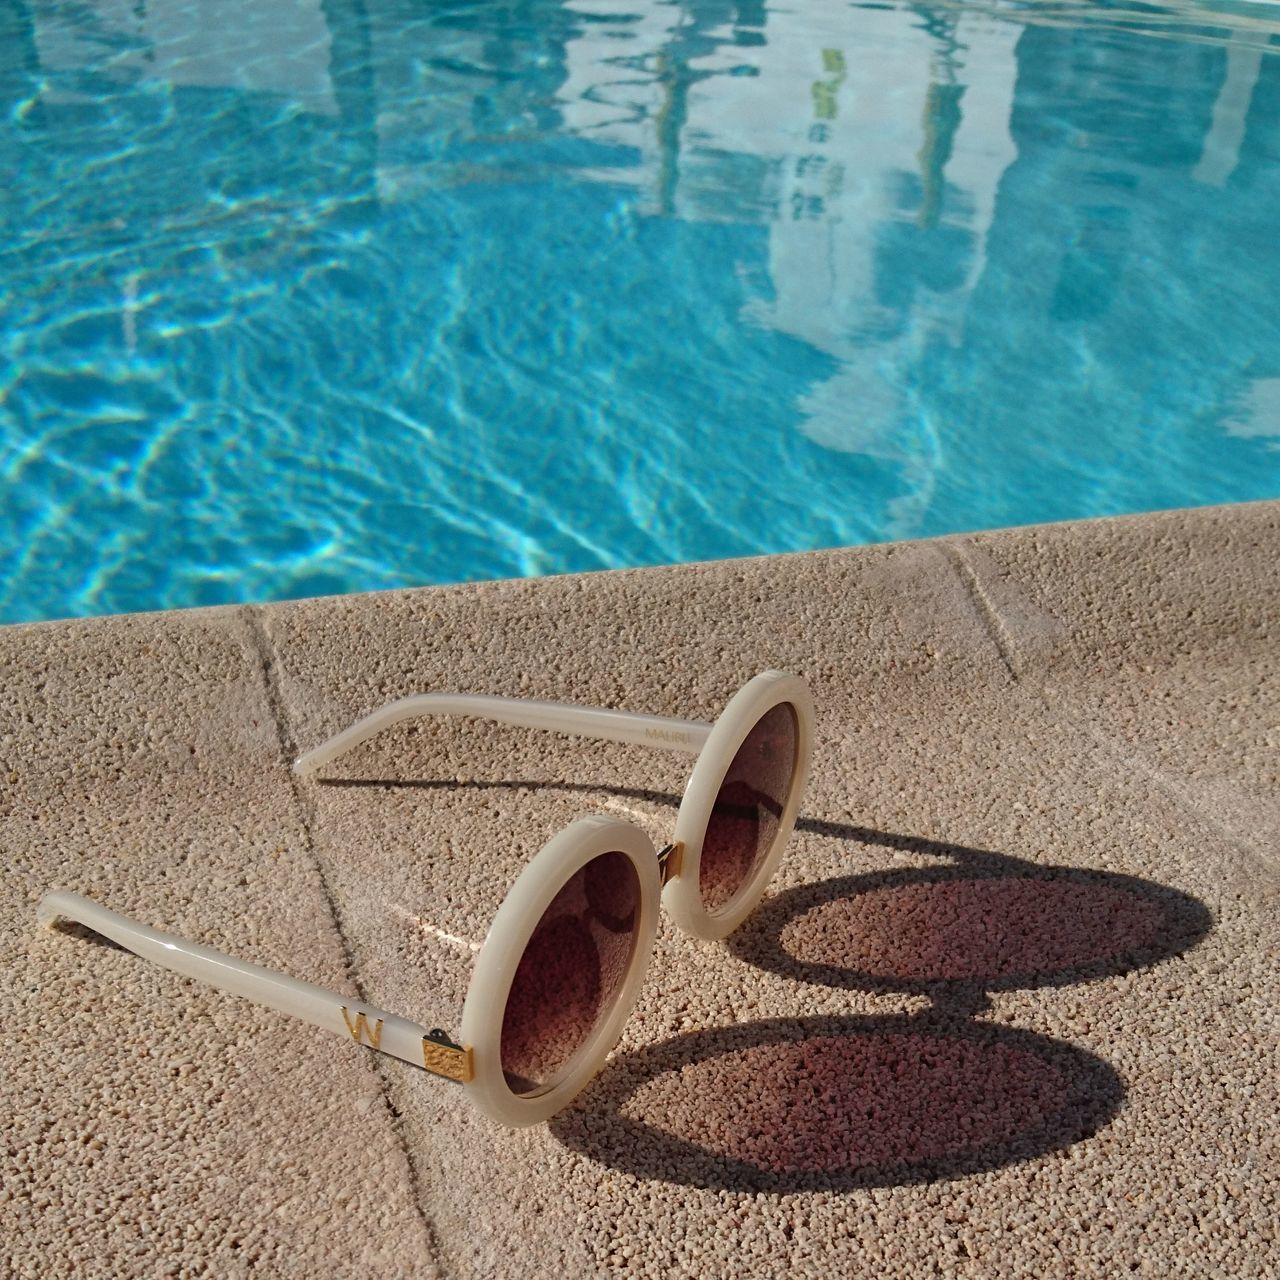 Poolside with my favorite sunglasses 😎 Poolside Swimming Pool Nofilter Wildfoxcouture Wildfox Reflection Shadow Shades Fuerteventura No People Holiday POTD Hanging Out Taking Photos Water High Angle View Day Outdoors Close-up Nature